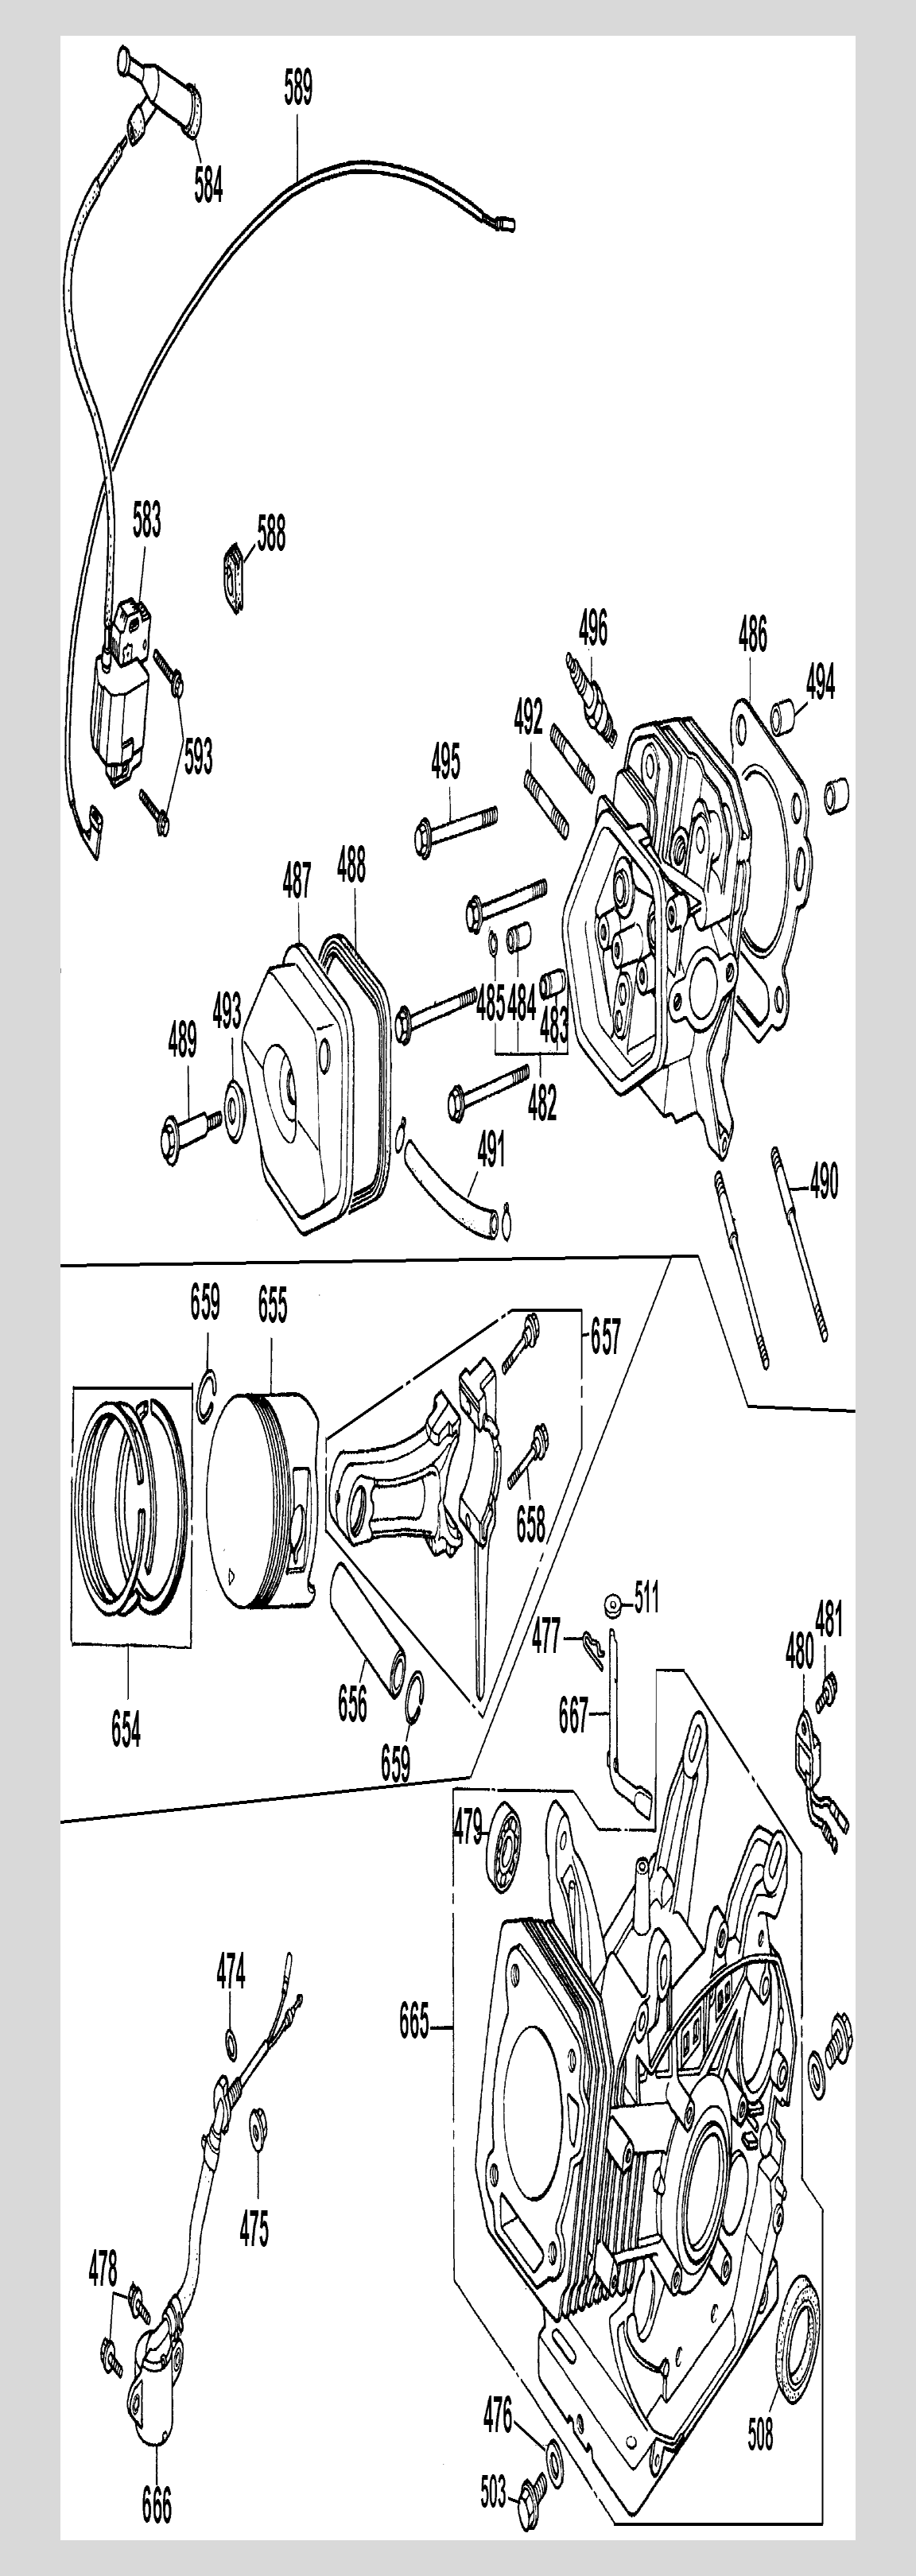 D55275-T4-Dewalt-PB-5Break Down